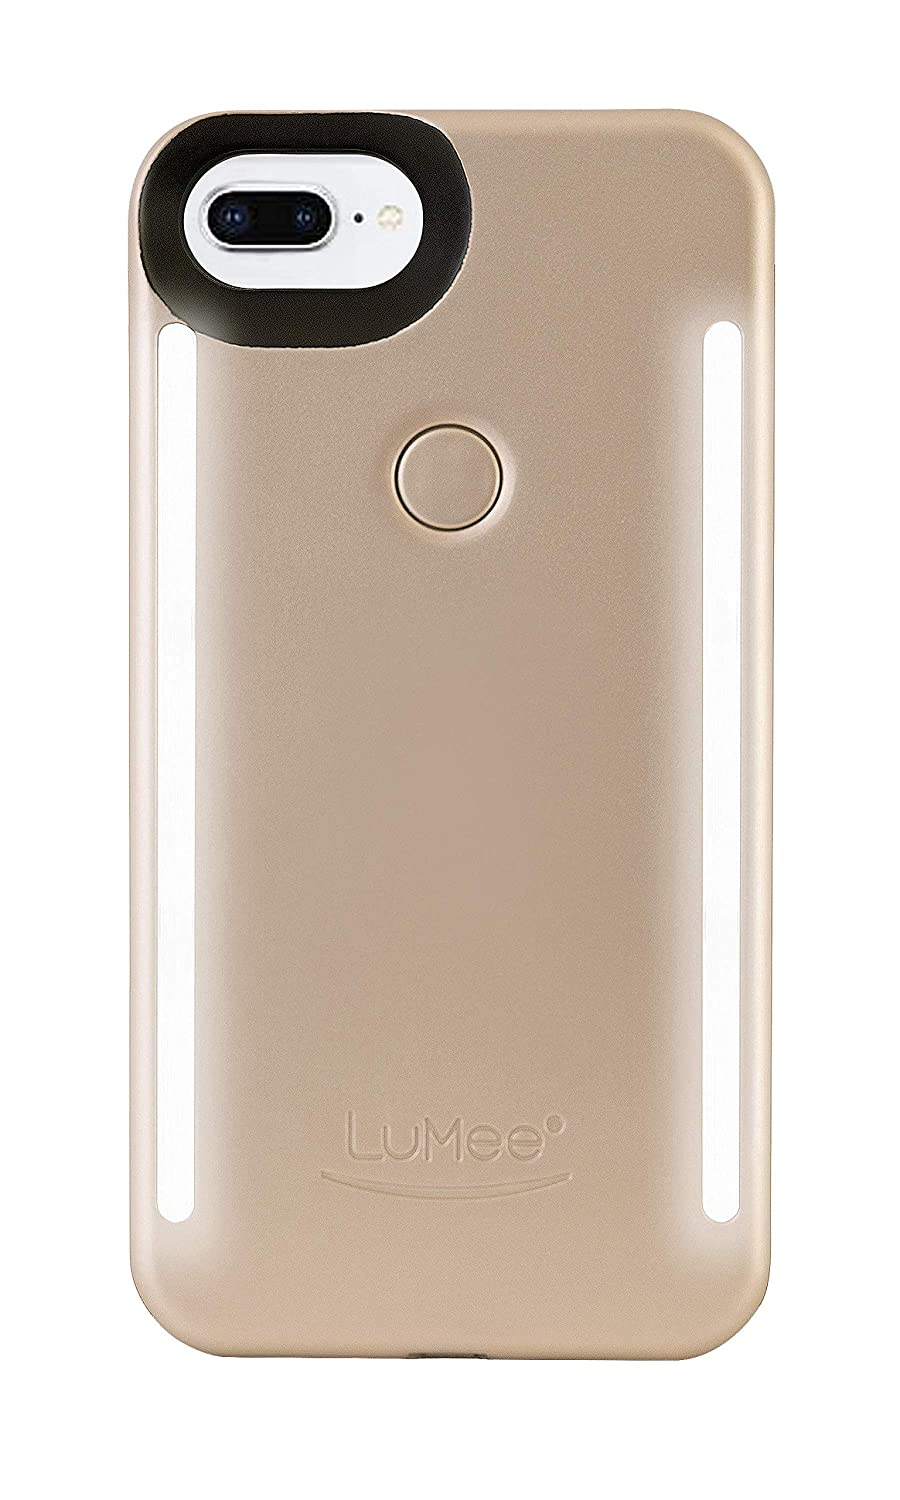 new style ba527 3df0c LuMee Duo Phone Case, Gold Matte | Front & Back LED Lighting, Variable  Dimmer | Shock Absorption, Bumper Case, Selfie Phone Case | iPhone 8+ /  iPhone ...